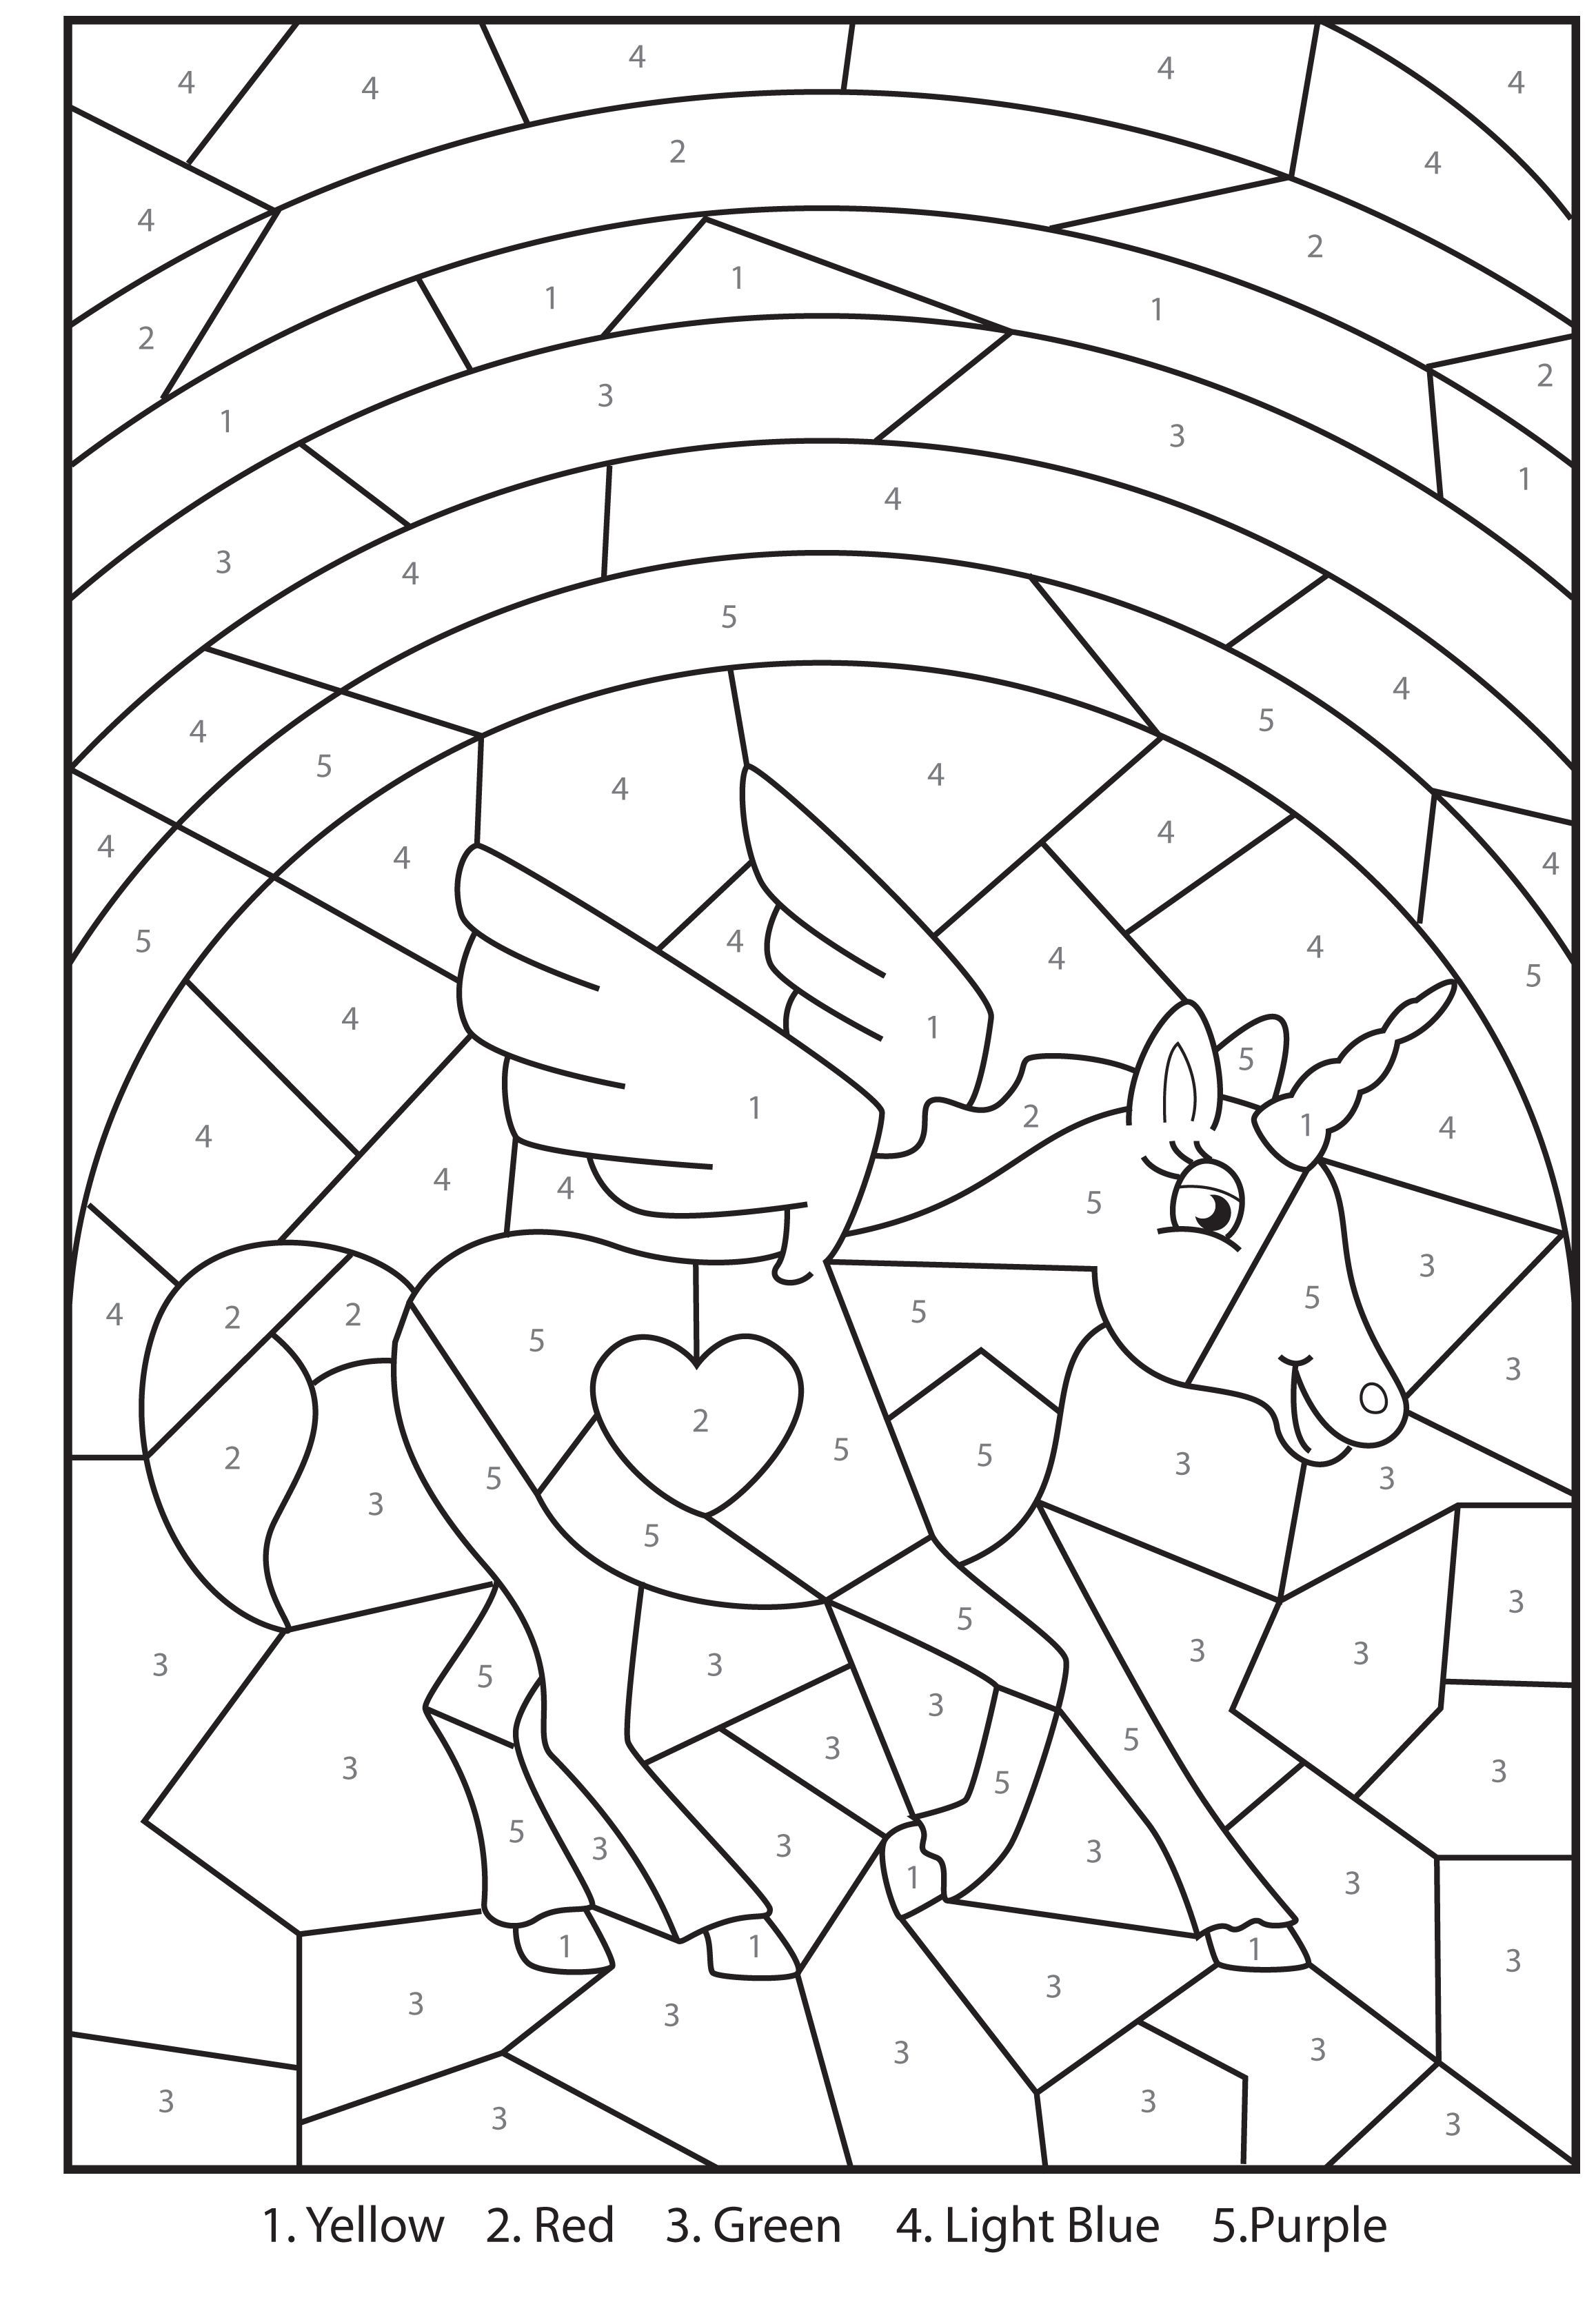 Unicorn Coloring By Number Unicorn 3d Coloring By Number Unicorn Color By Numbe Unicorn Coloring Pages Free Kids Coloring Pages Printables Free Kids Coloring